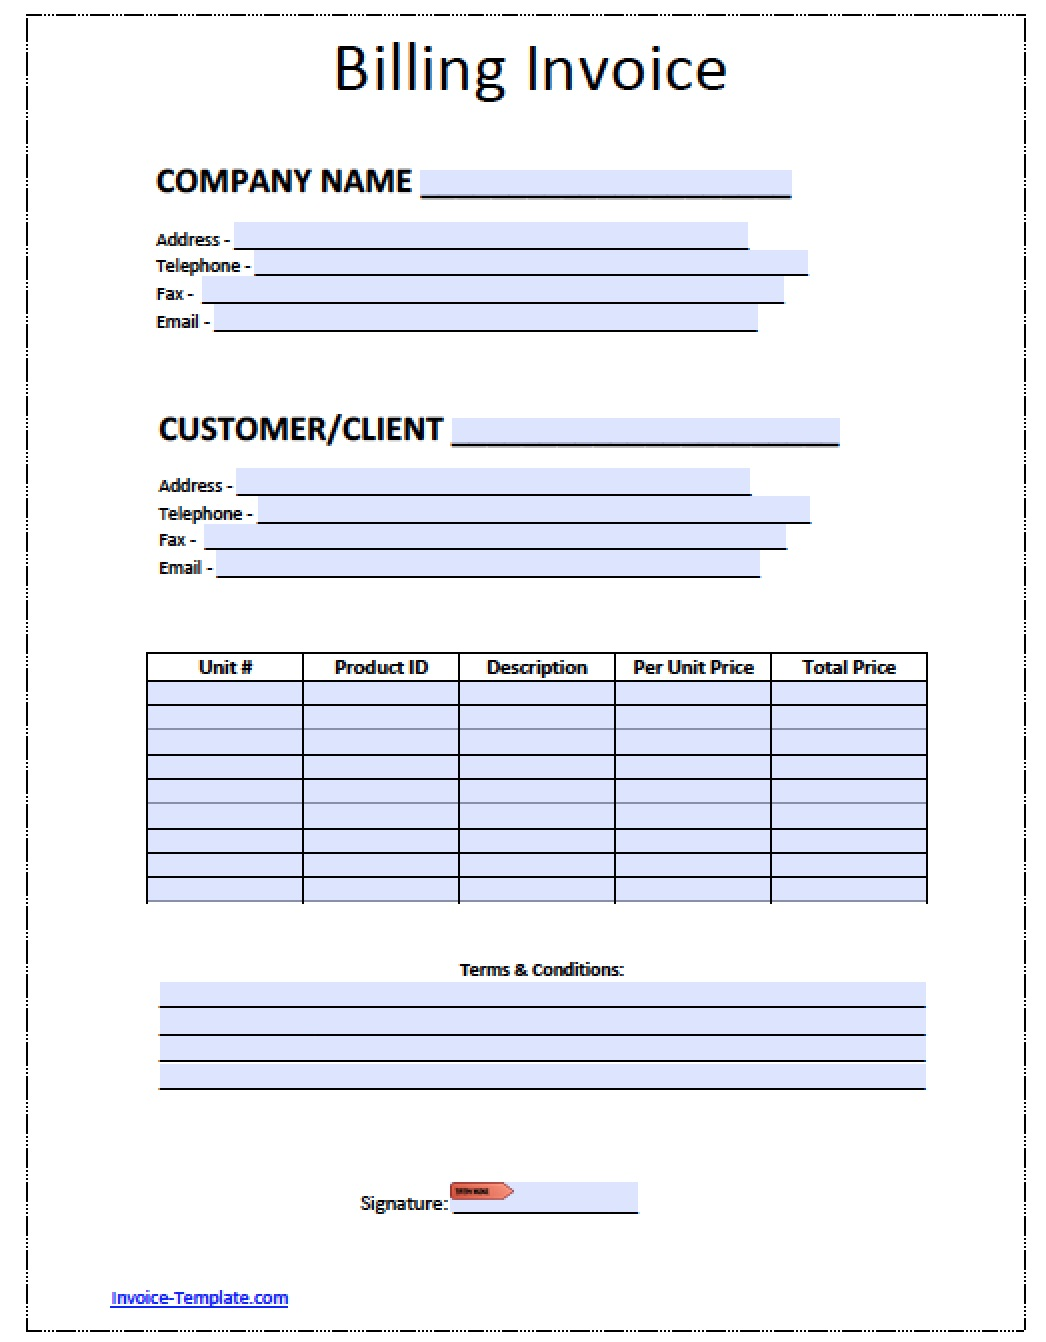 Hucareus  Winning Billing Invoice Invoices Faq U Cloudflare Support Billing  With Handsome Free Billing Invoice Template  Excel  Pdf  Word Doc  Billing With Nice Free Invoice Software Online Also Company Invoice Forms In Addition Examples Of Invoice Templates And Invoice Contract Template As Well As Excel Tax Invoice Template Additionally Carcostcanada Wholesale Invoice Price Report From Happytomco With Hucareus  Handsome Billing Invoice Invoices Faq U Cloudflare Support Billing  With Nice Free Billing Invoice Template  Excel  Pdf  Word Doc  Billing And Winning Free Invoice Software Online Also Company Invoice Forms In Addition Examples Of Invoice Templates From Happytomco